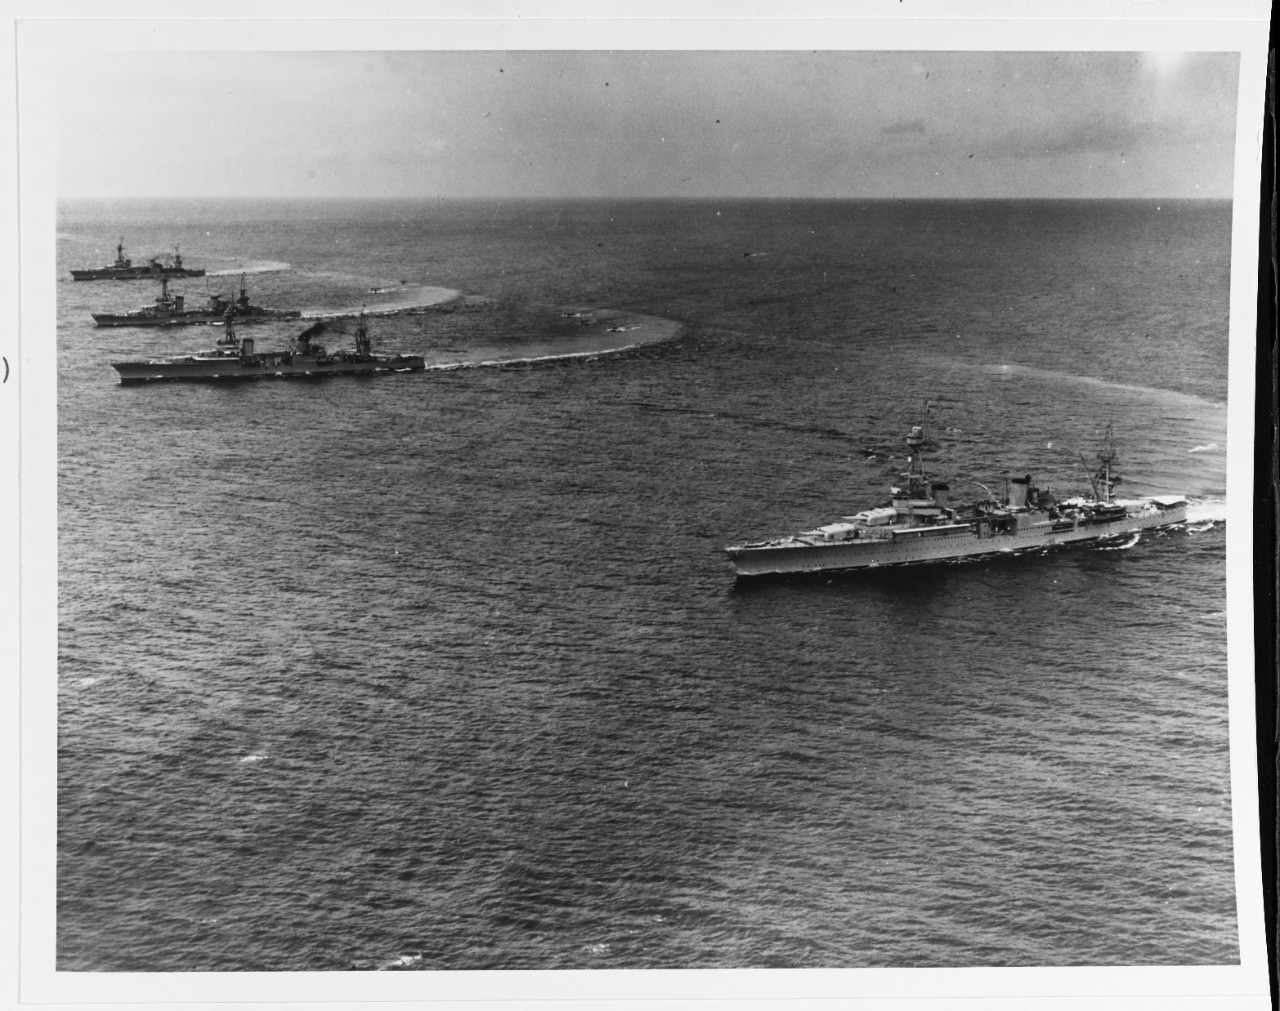 Chicago (right) demonstrates her nimble turning abilities as Scouting Force heavy cruisers turn to create a slick for floatplanes to land during maneuvers in Hawaiian waters, 31 January 1933. The other cruisers are (front to back) Louisville (CA-28), Salt Lake City (CA-25), and Northampton (CA-26). (U.S. Navy Photograph 80-G-451165, National Archives and Records Administration, Still Pictures Branch, College Park, Md.)